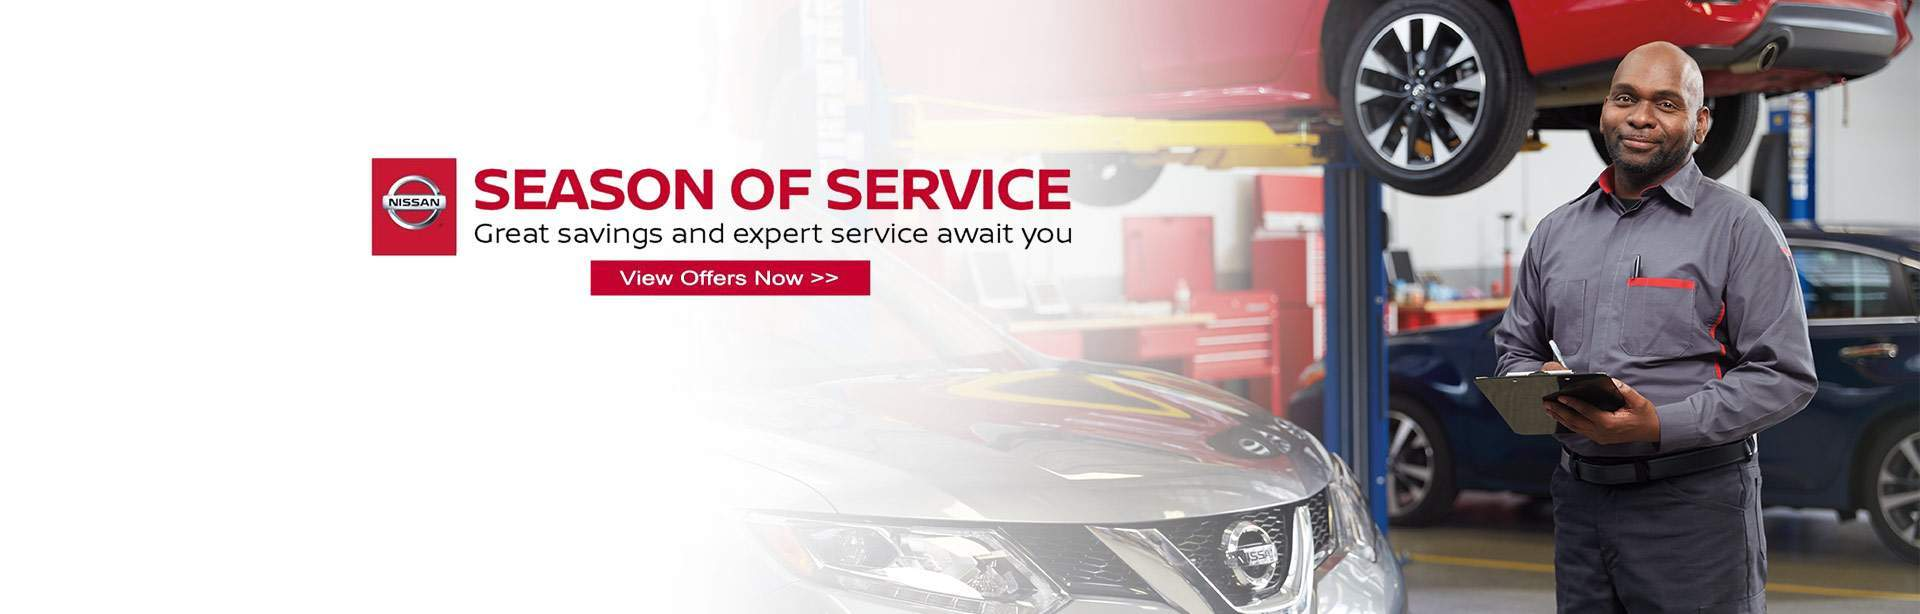 Nissan Service Savings at Tom Naquin Nissan